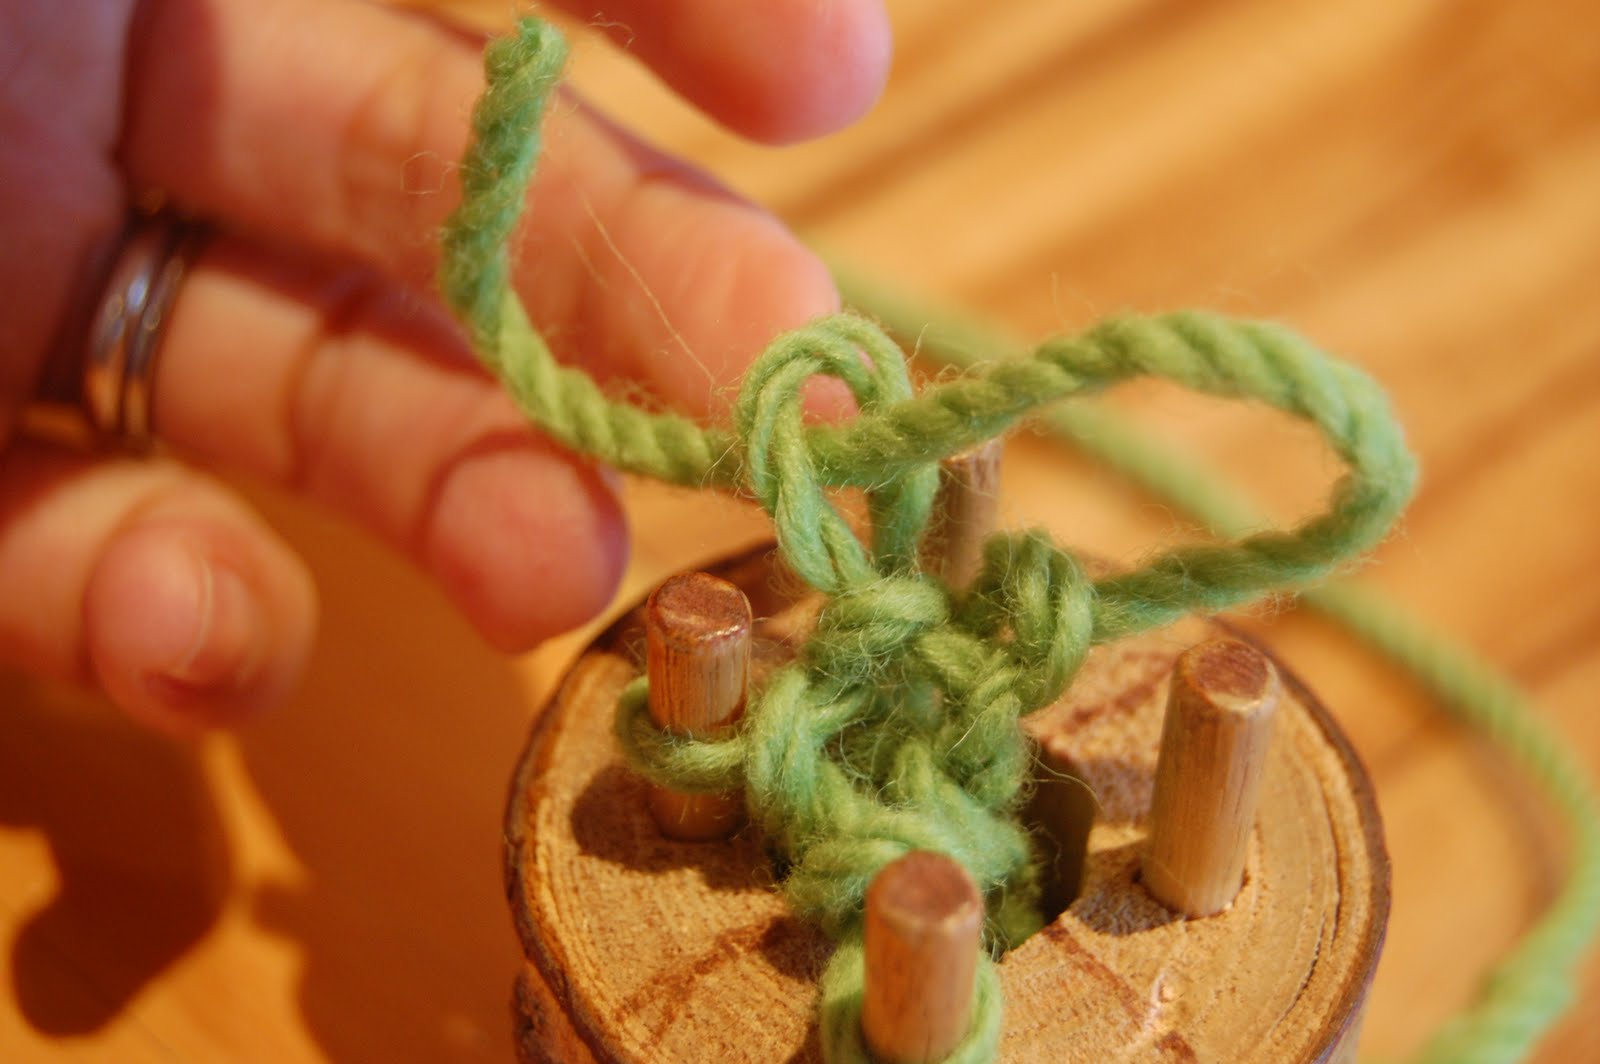 Knitting Nancy How To Use : How to use a knitting nancy educator